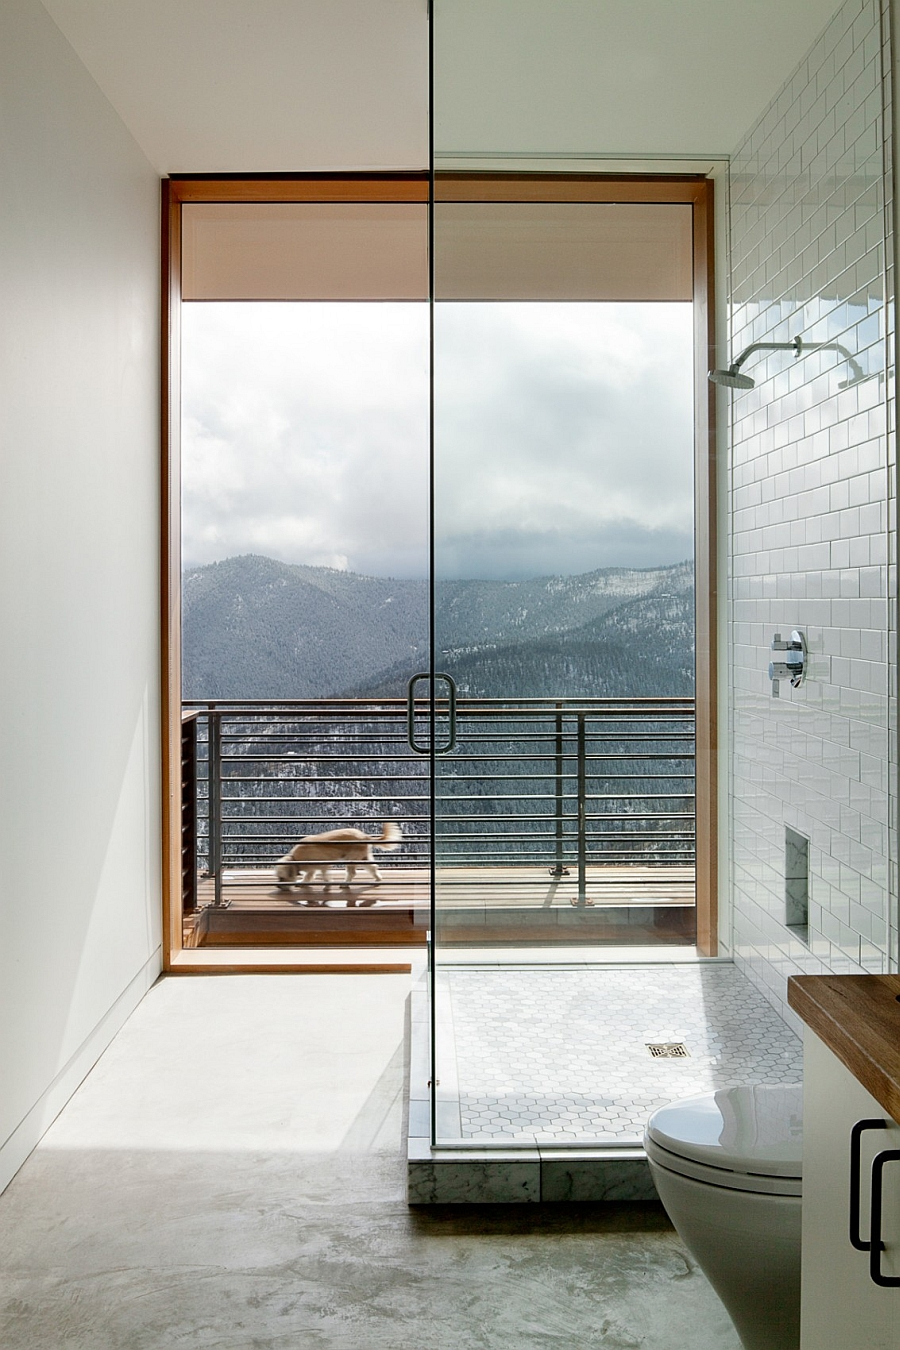 Glass shower enclosure connected with the deck space